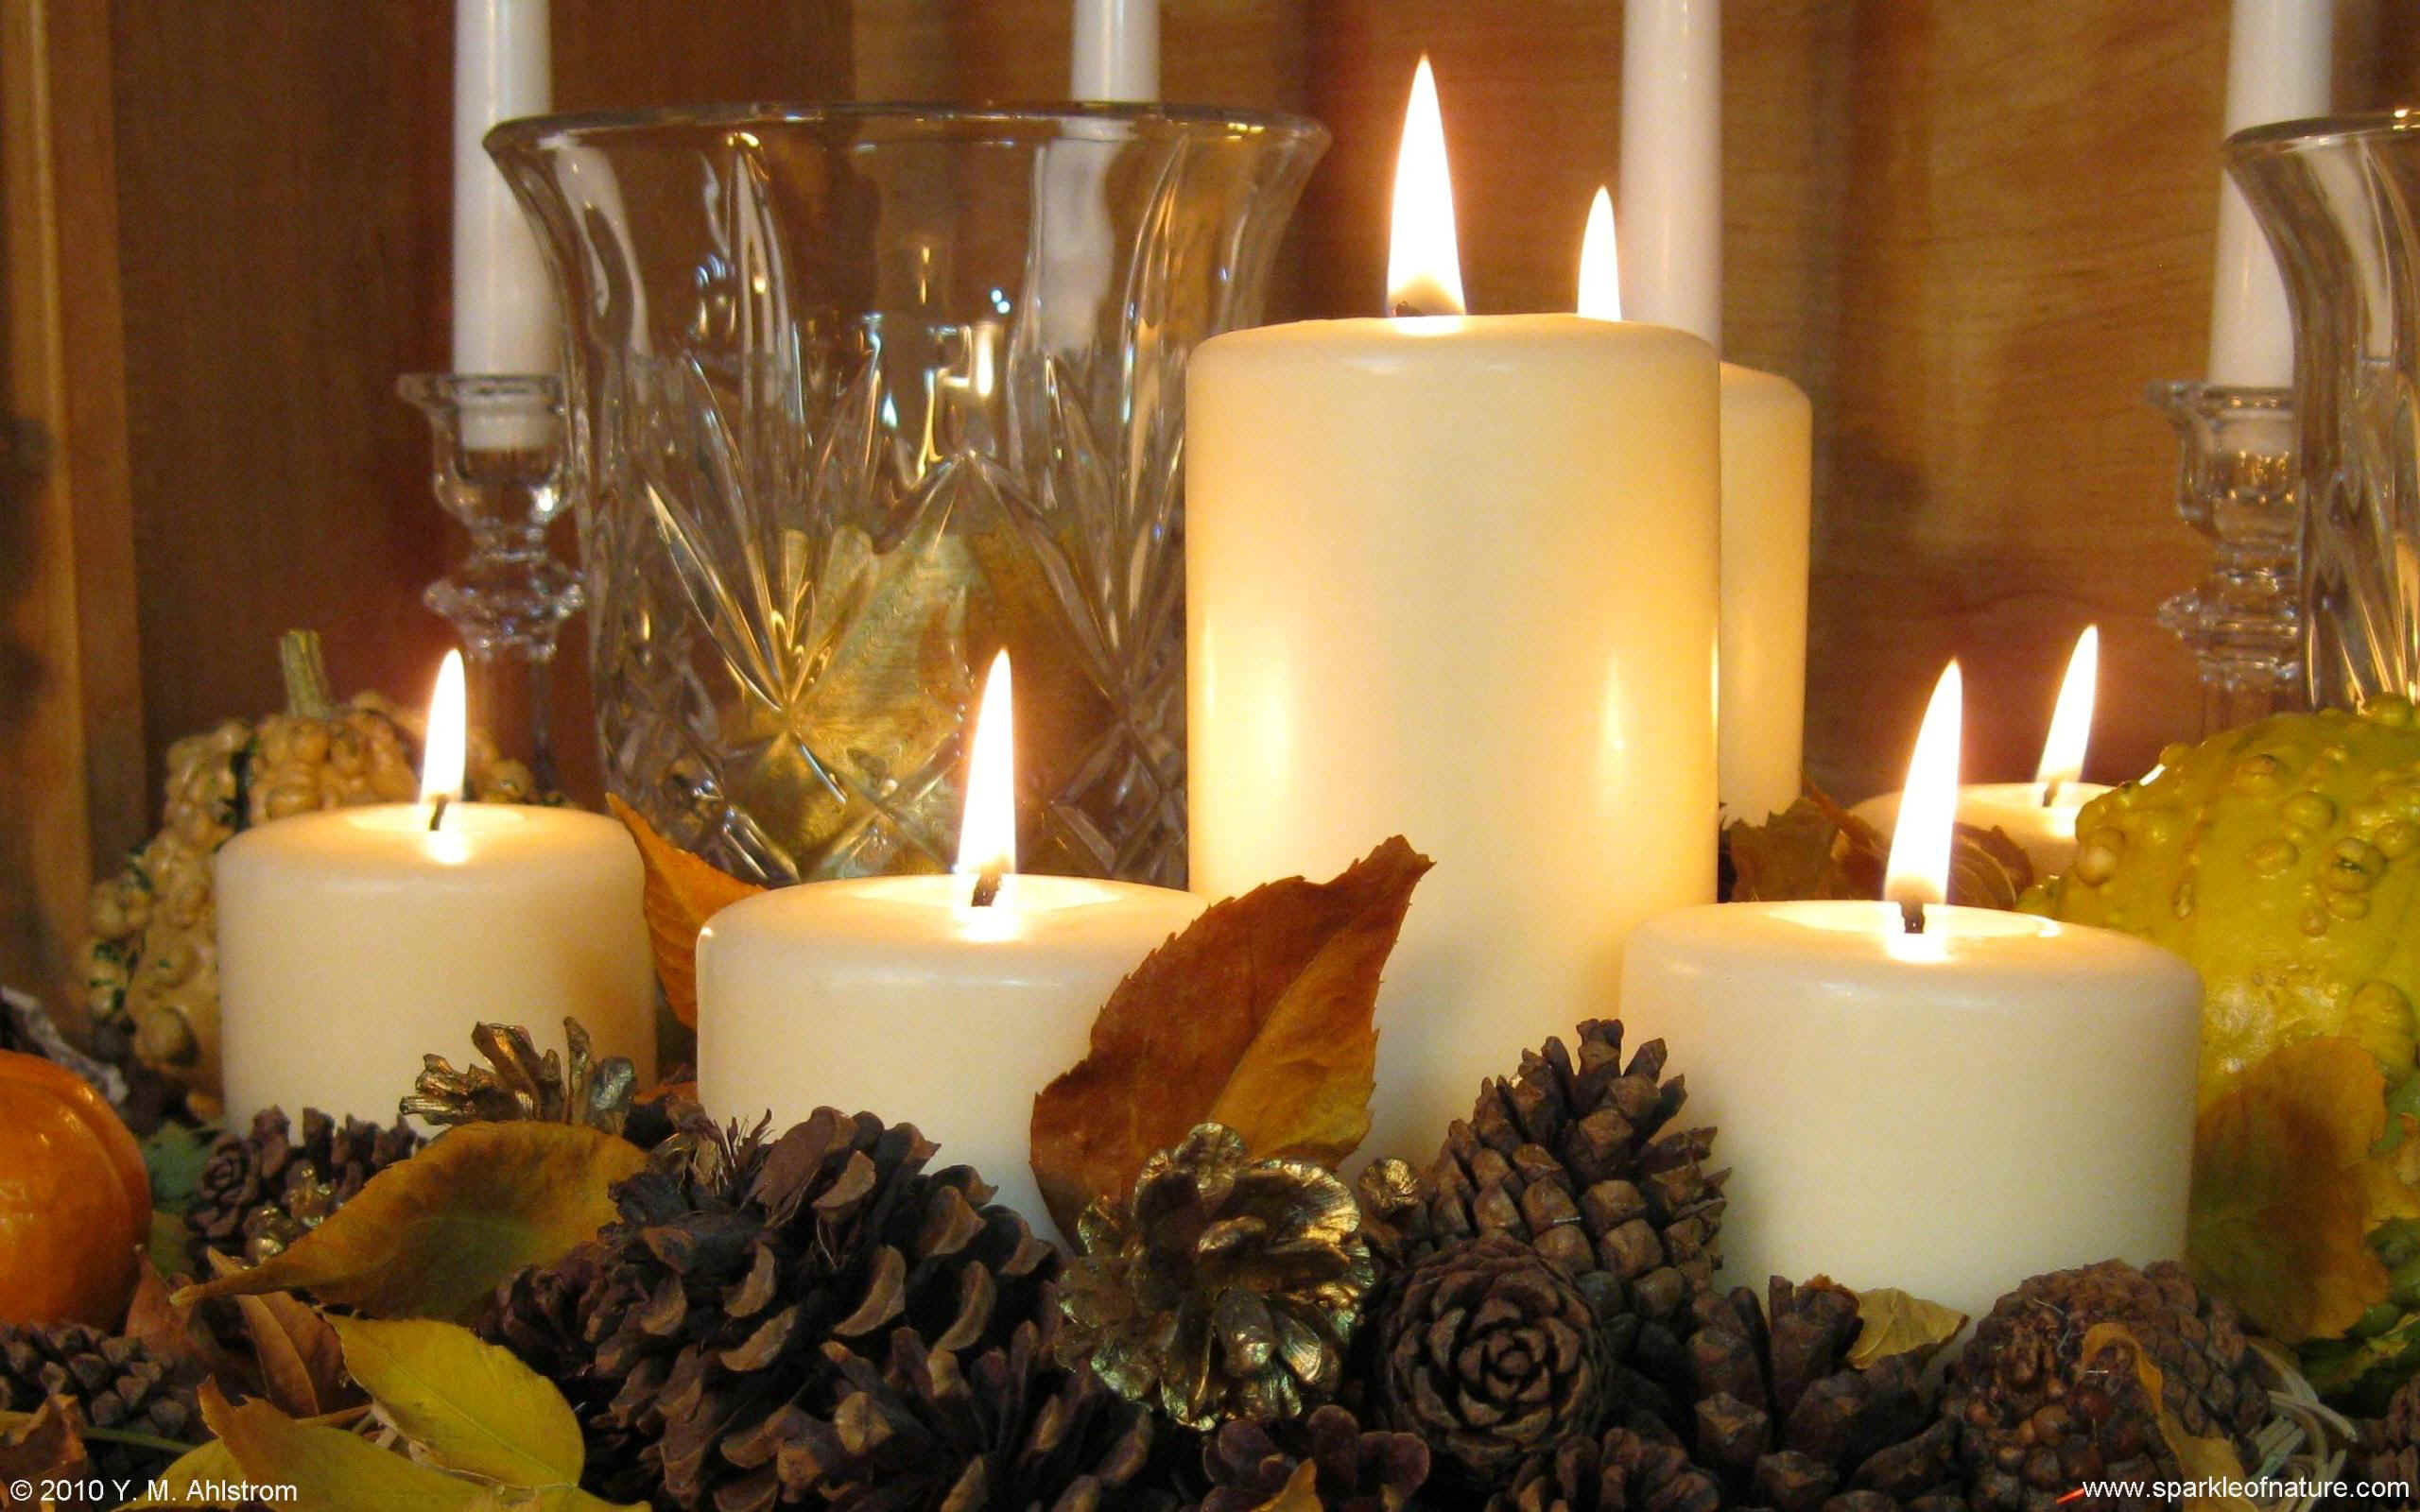 4090 fall candles 1 w 2560x1600.jpg (439538 bytes)